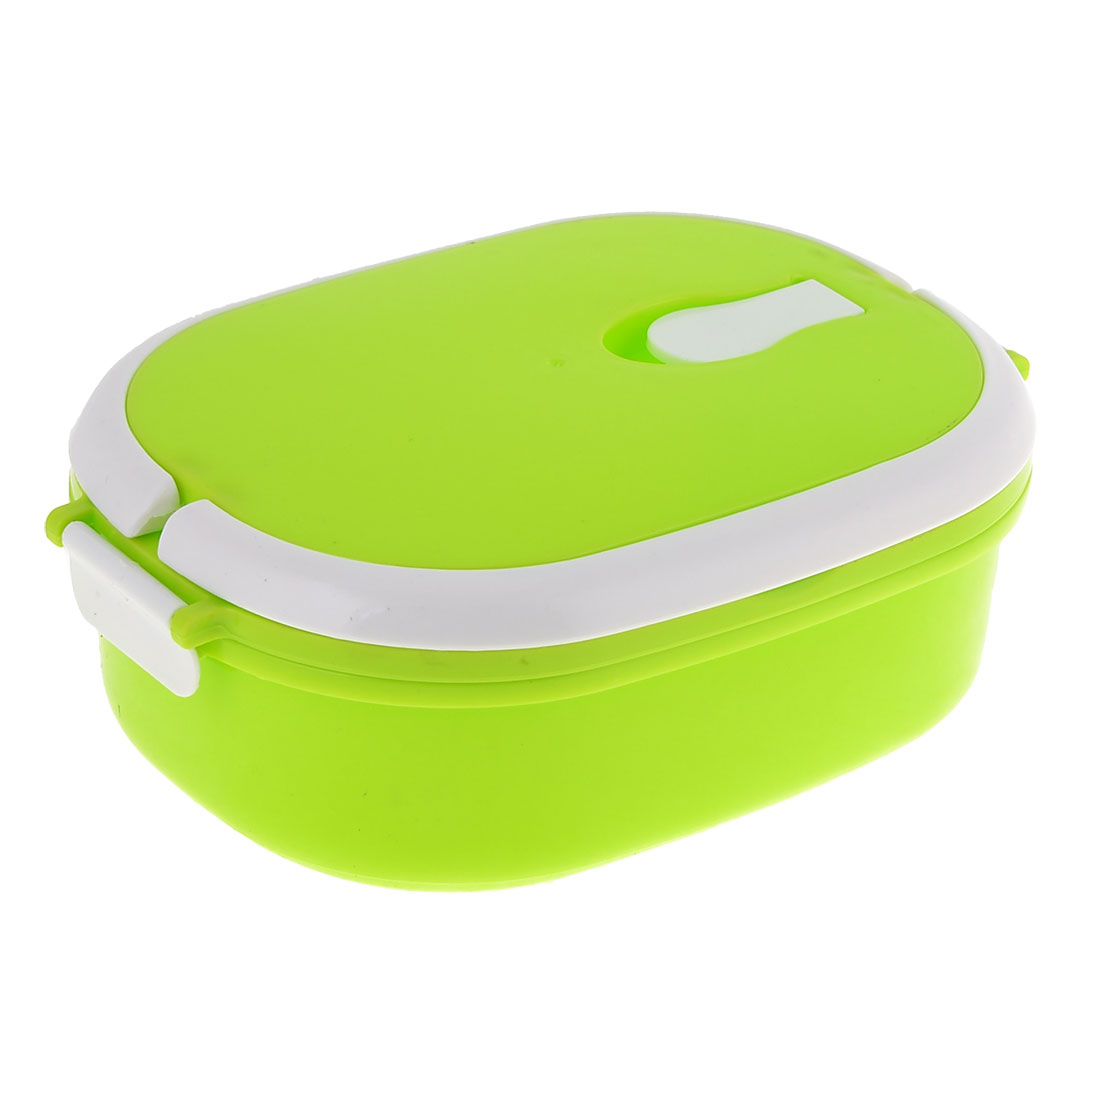 Kitchenware Ellipse Shaped Plastic Spoon Dinner Case Lunch Box Light Green